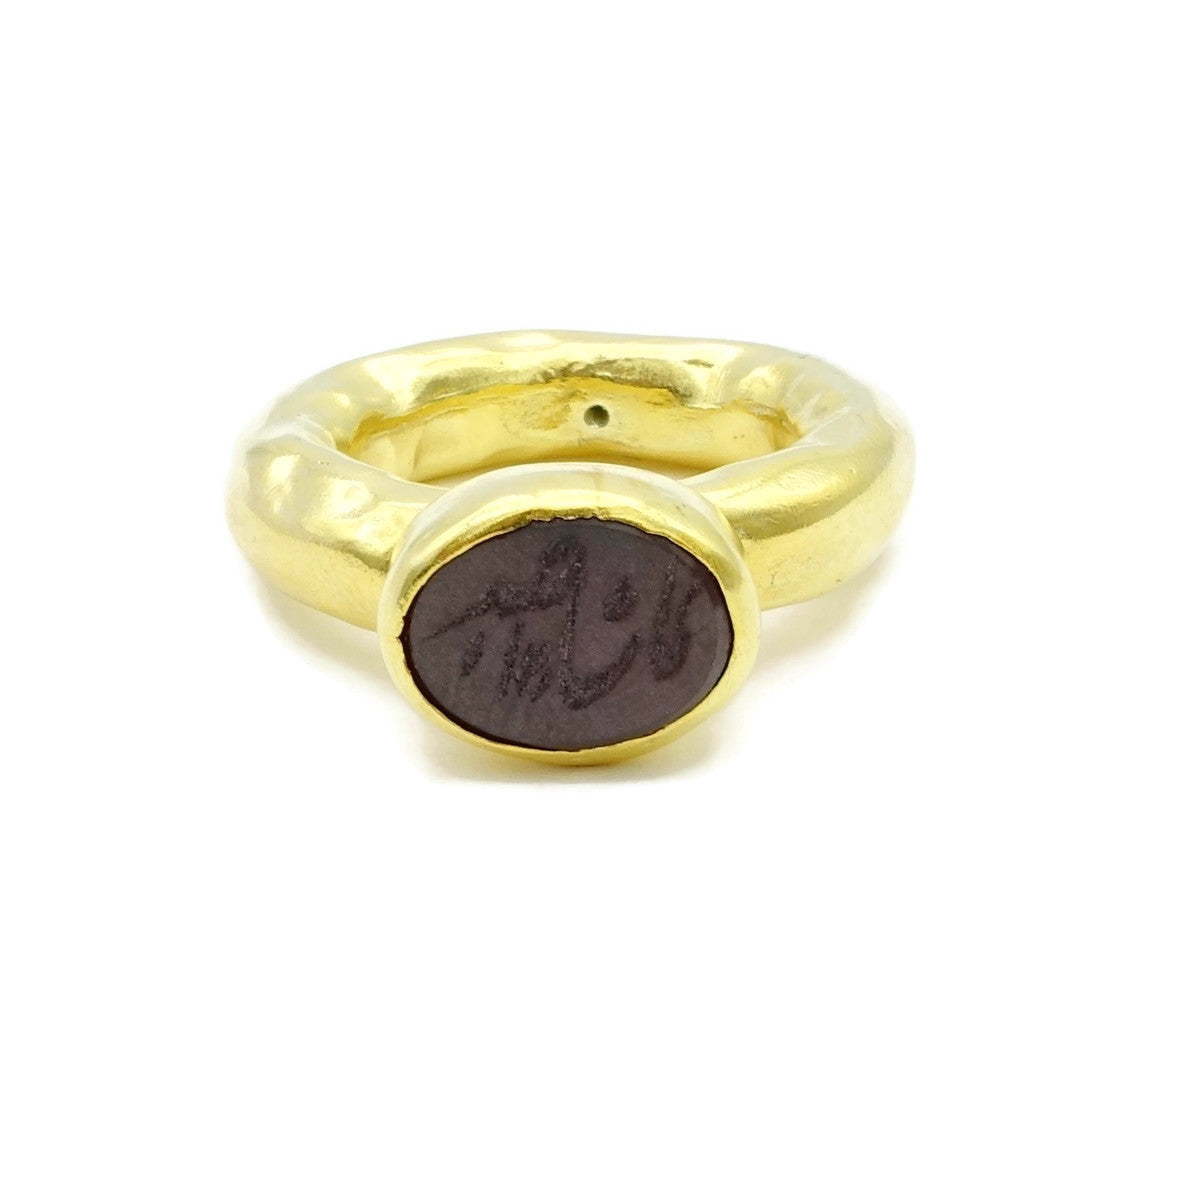 Aylas Agate Calligraphy Ring- 21ct Gold plated Sterling silver- Semi precious Gem stones